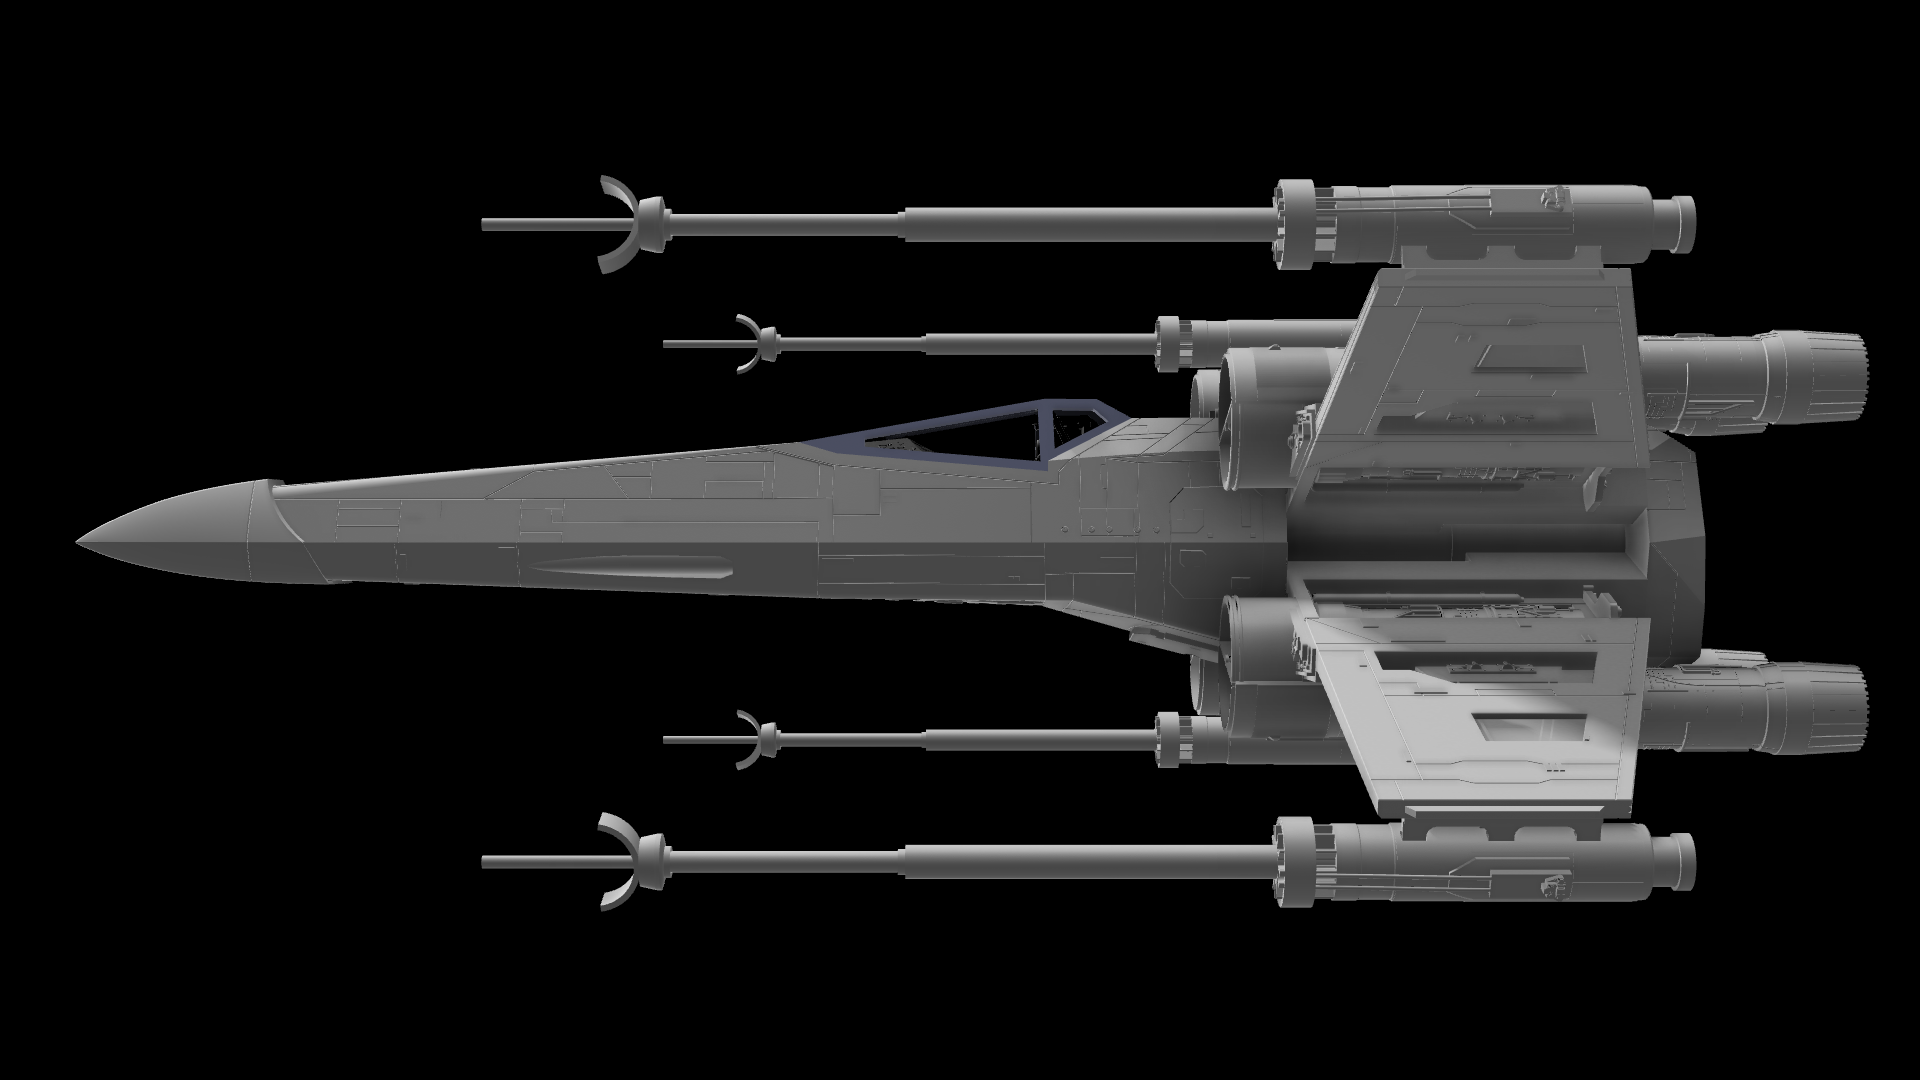 x-wing_zb v11-14.png